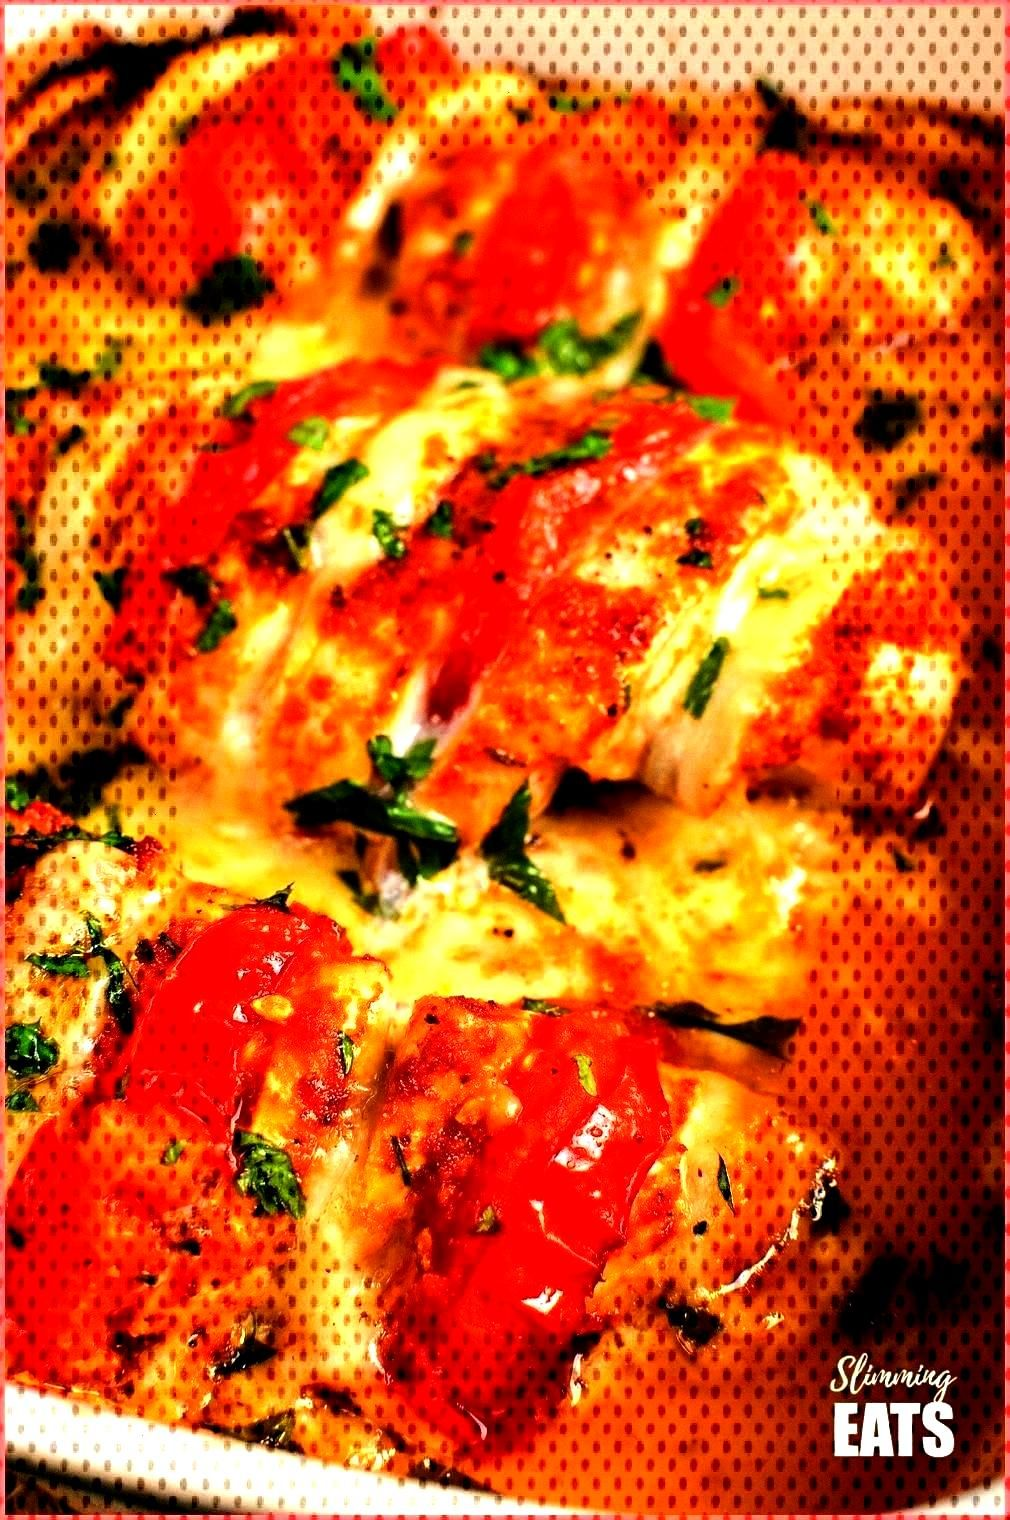 and mozzarella hasselback chicken in oven proof dish - - tomato and mozzarella hasselback chicken i